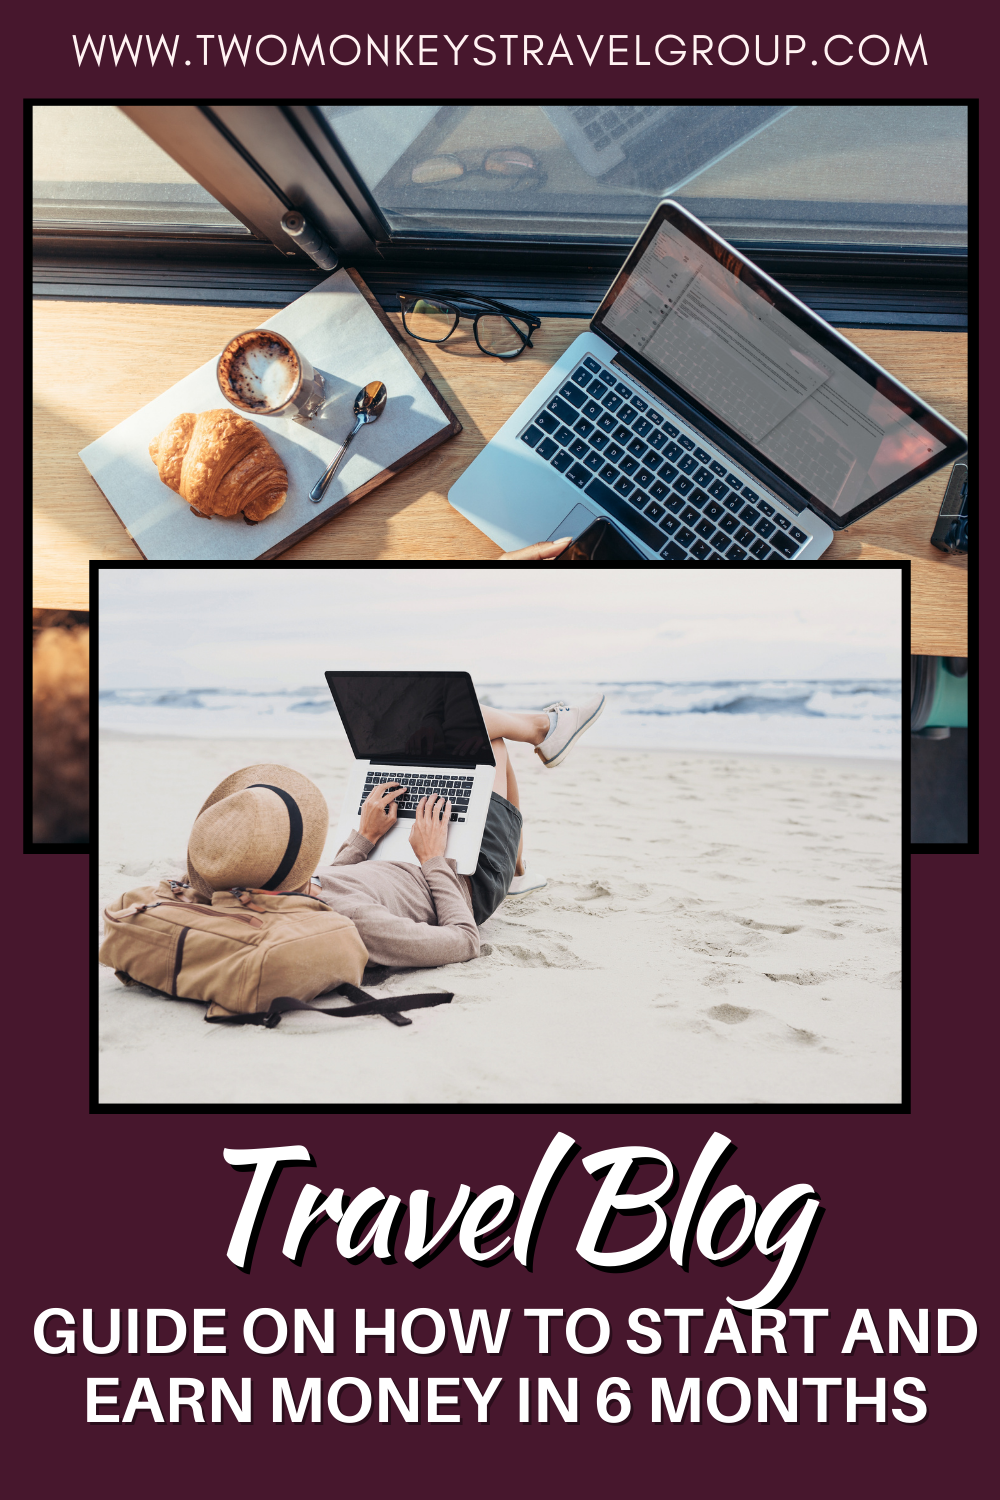 How to Start a Travel Blog and Earn Money in 6 months (Part 1 of 2)3